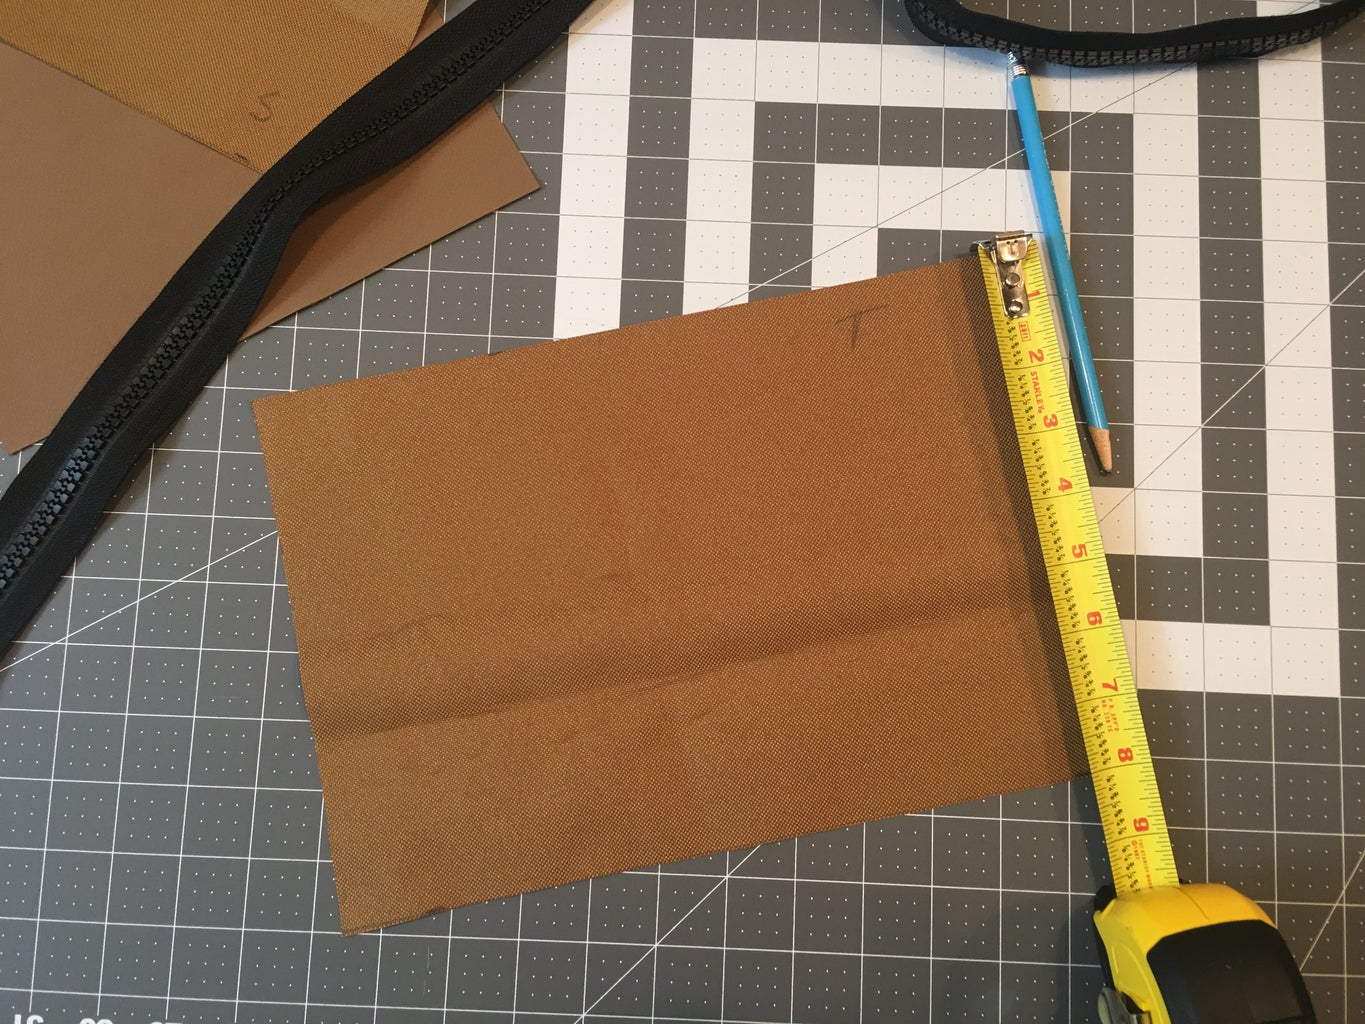 Cutting Pieces of Canvas for the Bag: